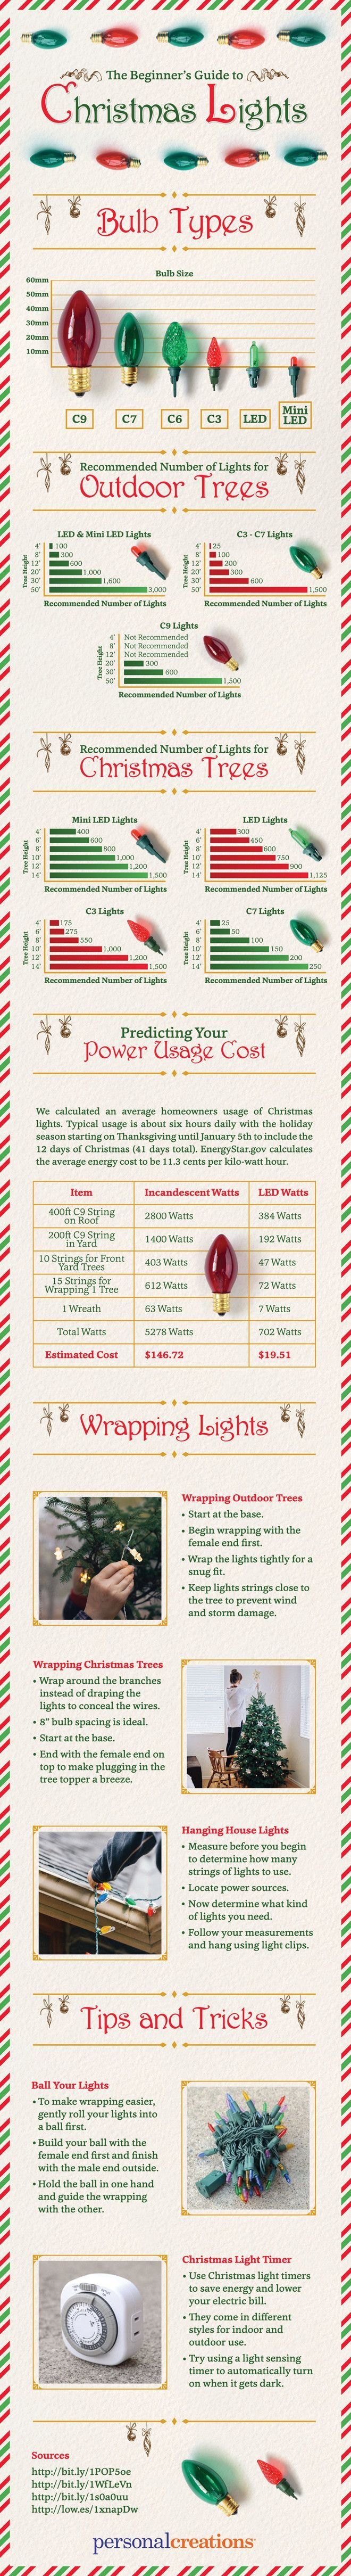 Outdoor lighting 181 pinterest the beginners guide to christmas lights how to care for your christmas lights how mozeypictures Gallery